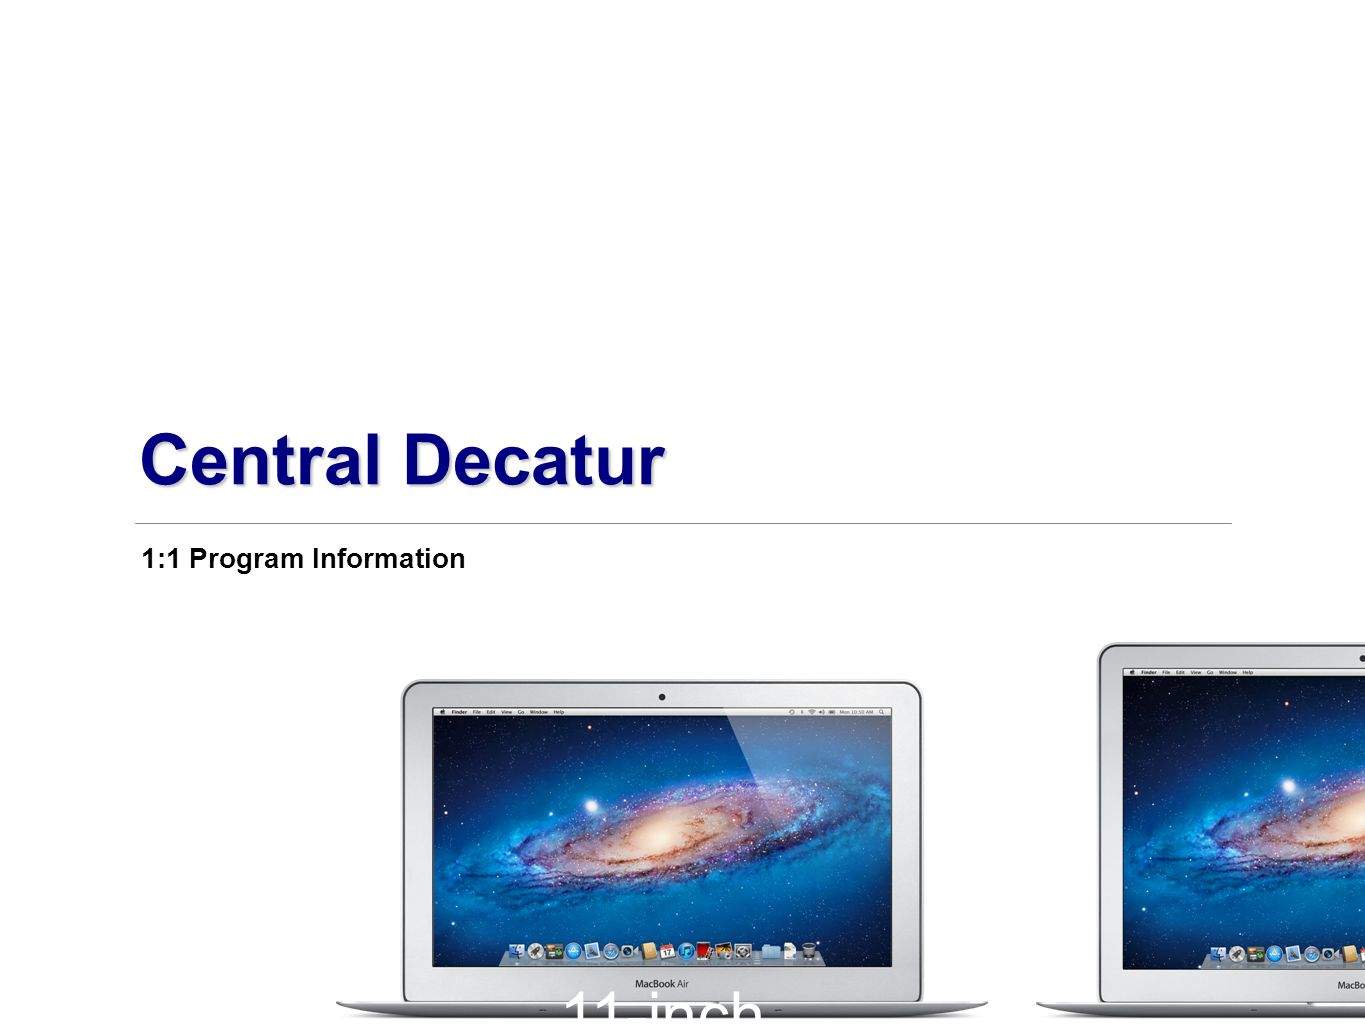 11-inch MacBook Air Air.11–.68 inch thin 2.38 pounds 13-inch MacBook Air.11–.68 inch thin 2.96 pounds 1:1 Program Information Central Decatur